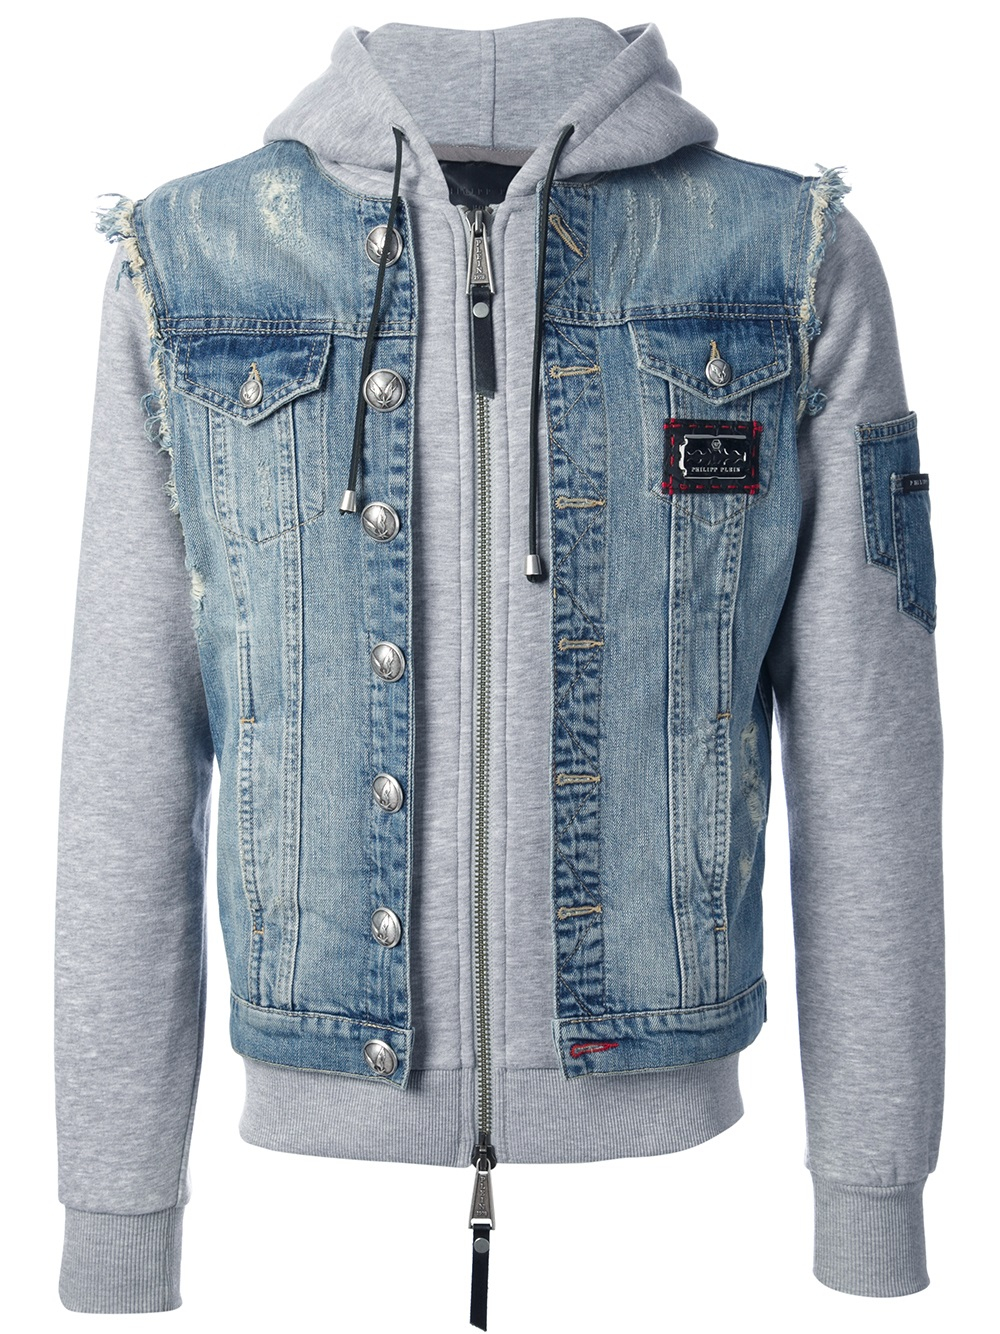 philipp plein layered denim jacket in blue for men lyst. Black Bedroom Furniture Sets. Home Design Ideas